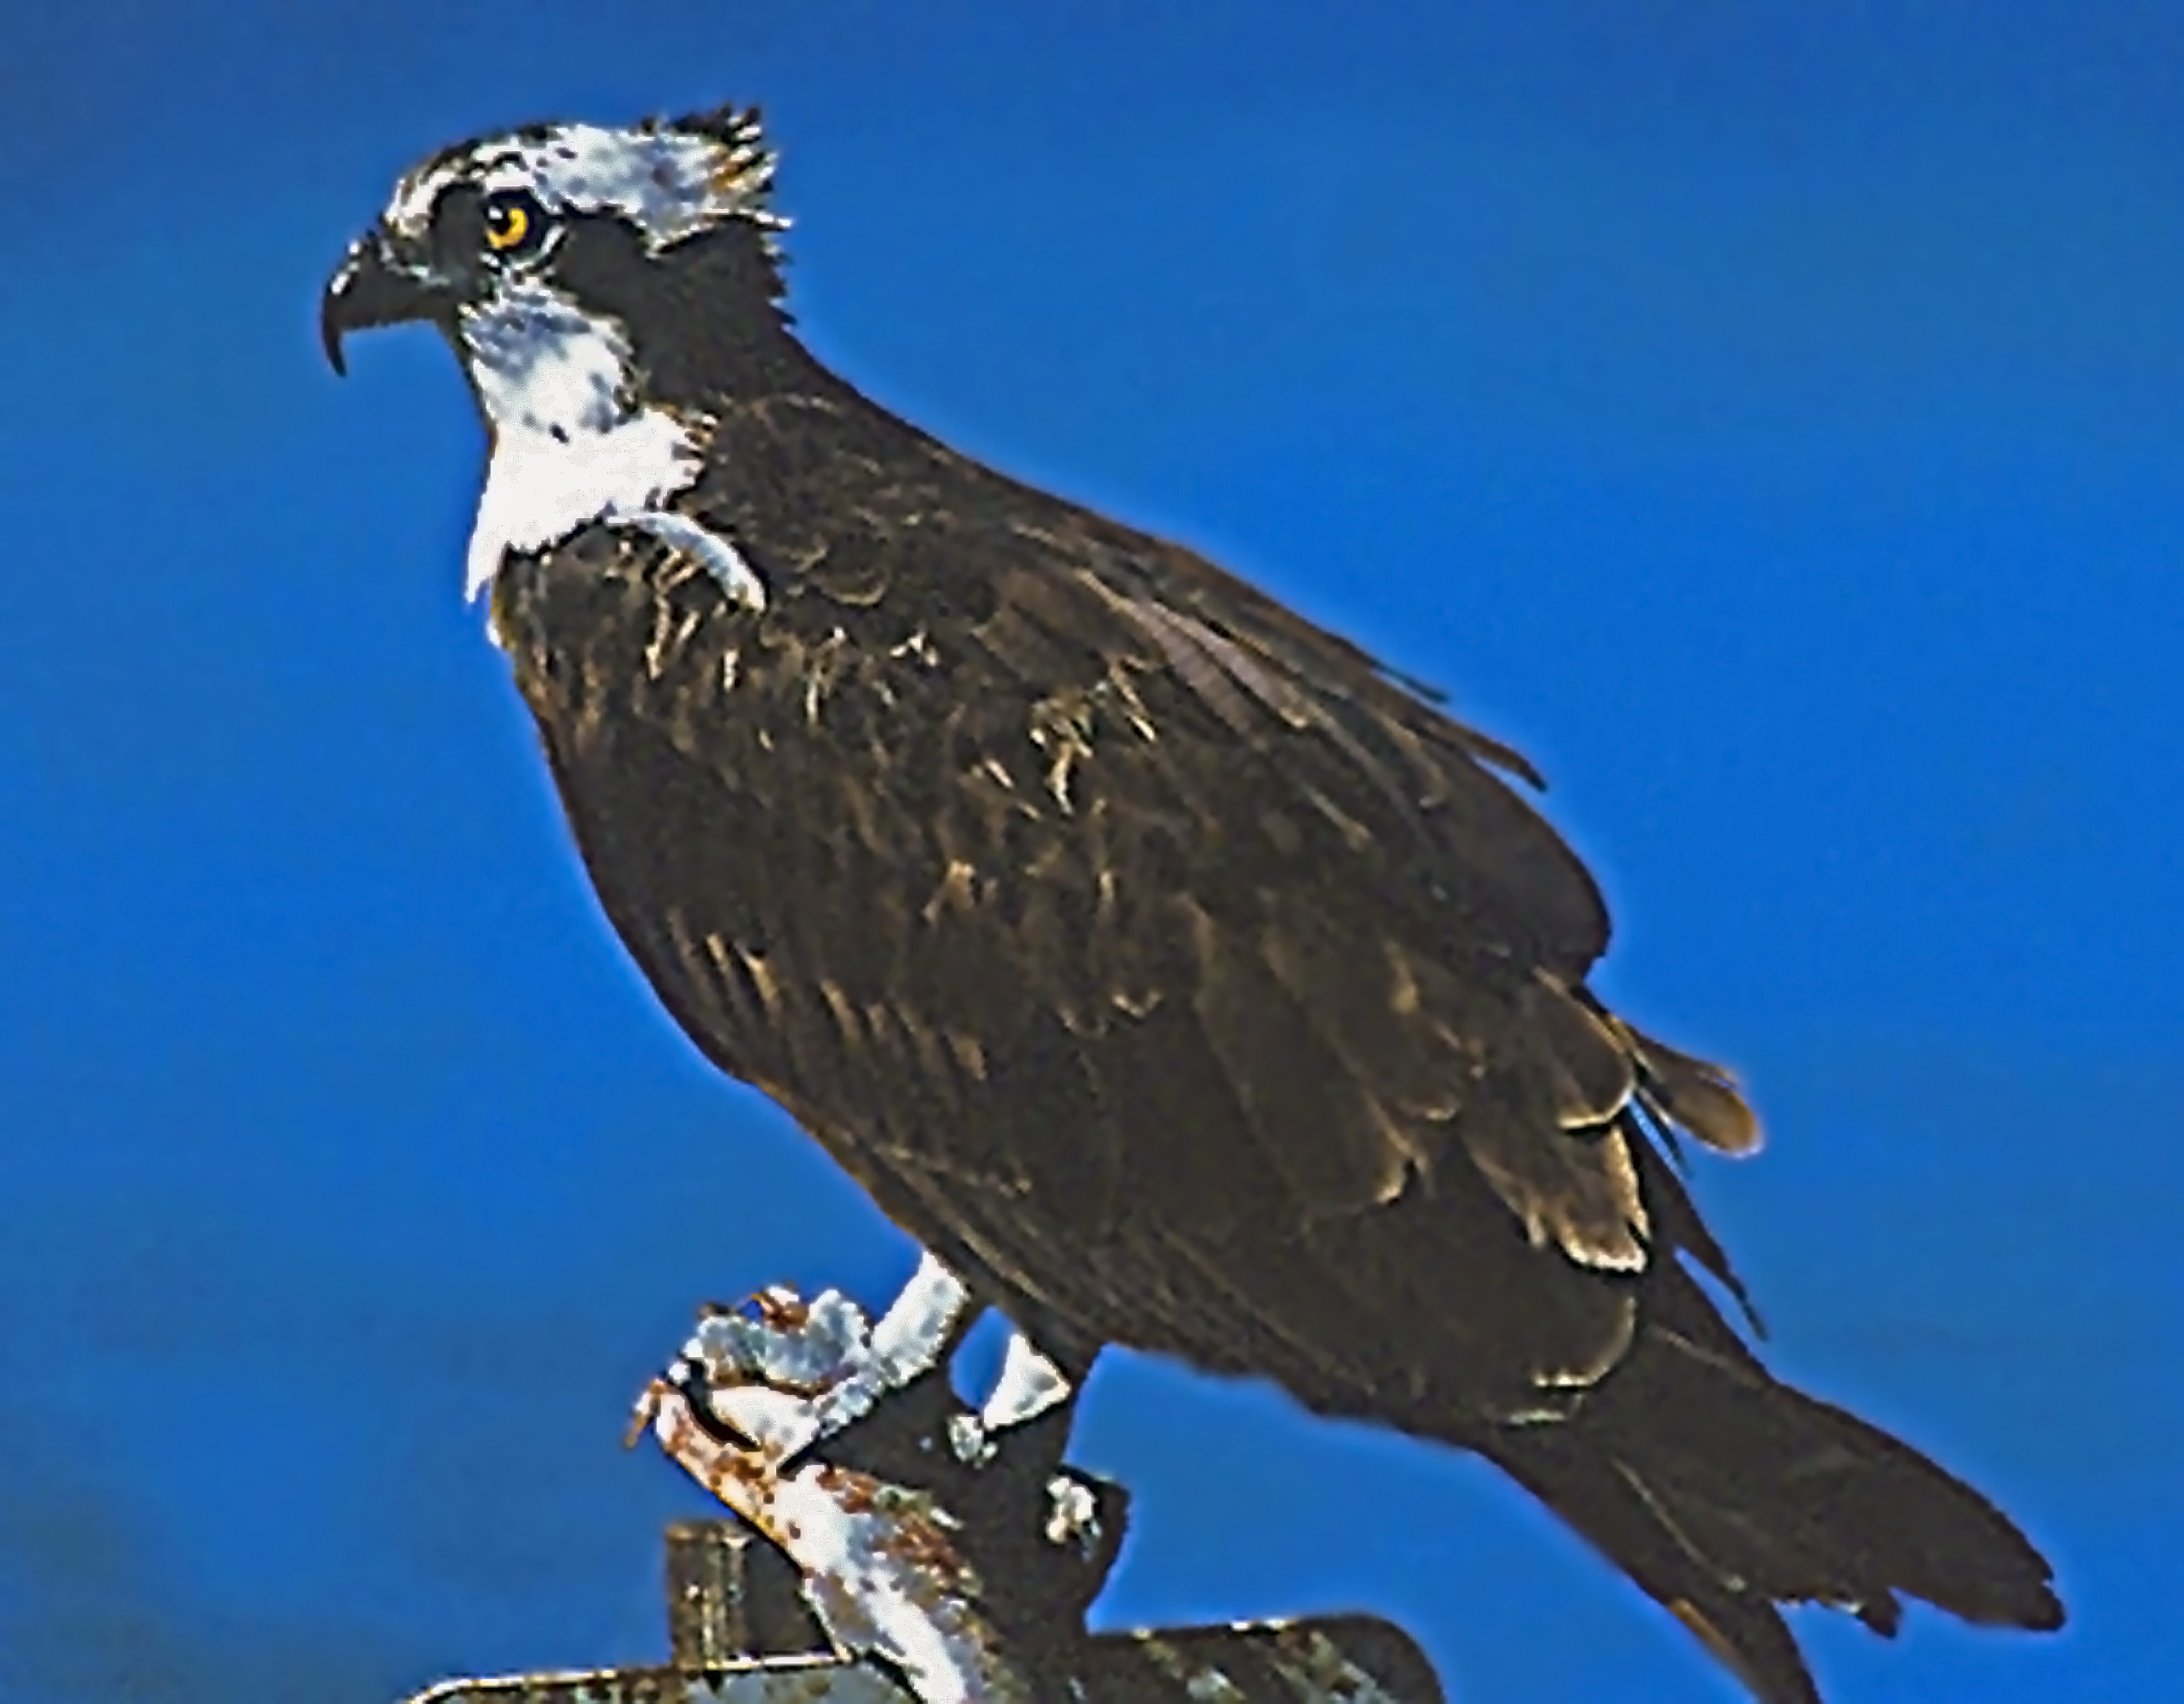 File:Osprey, adult.jpg - Wikimedia Commons